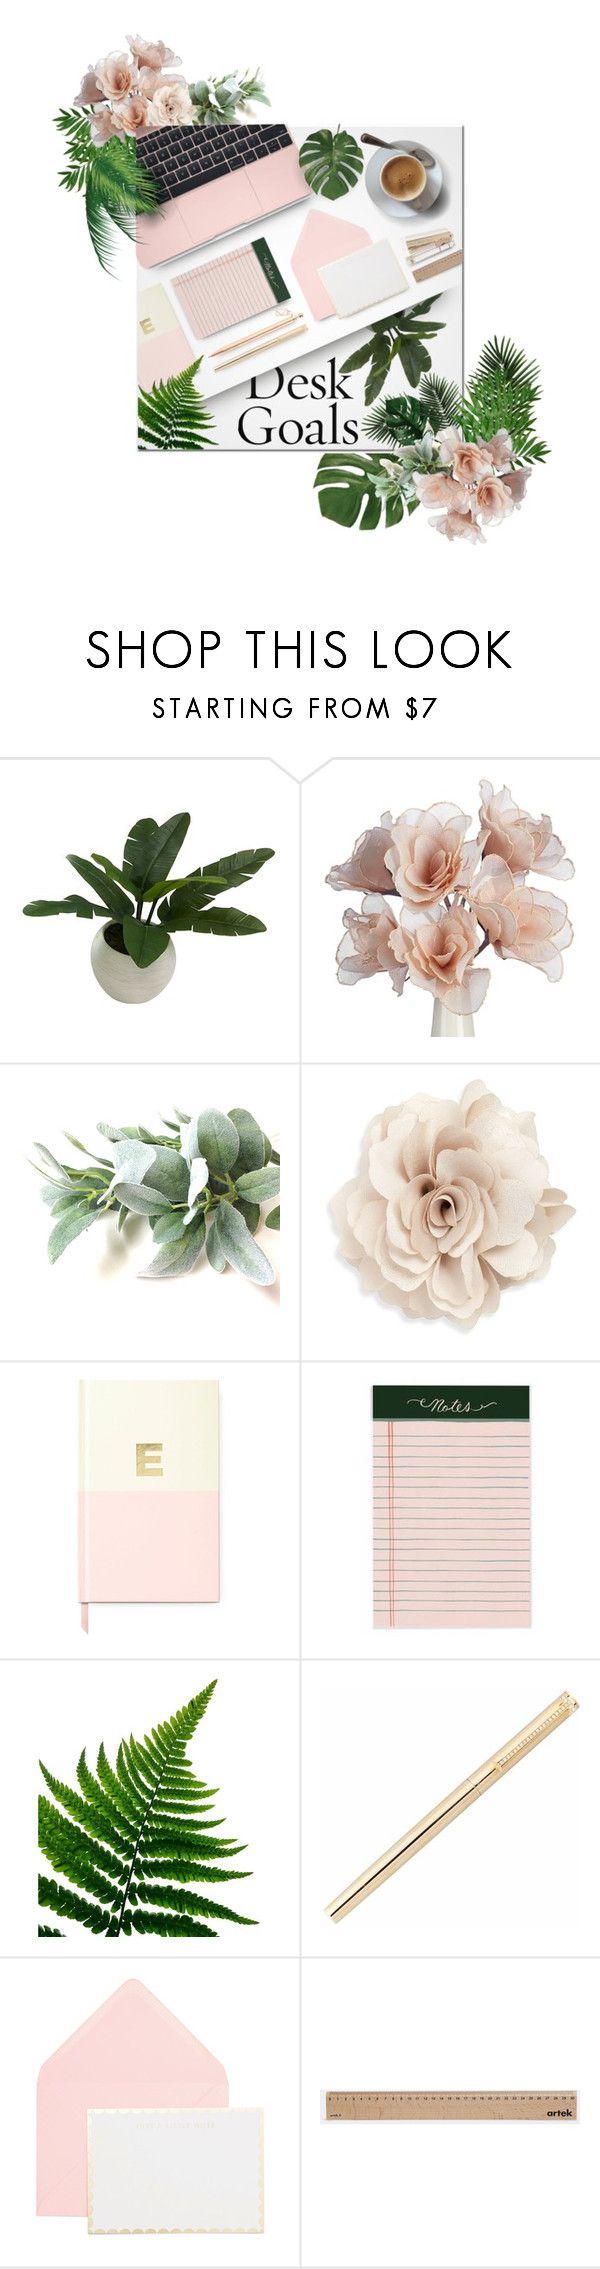 Threshold home decor shop for threshold home decor on polyvore -  Tropical Desk Goals By Ayelmaoki Liked On Polyvore Featuring Interior Interiors Desksgoalstropicalinterior Decoratinginterior